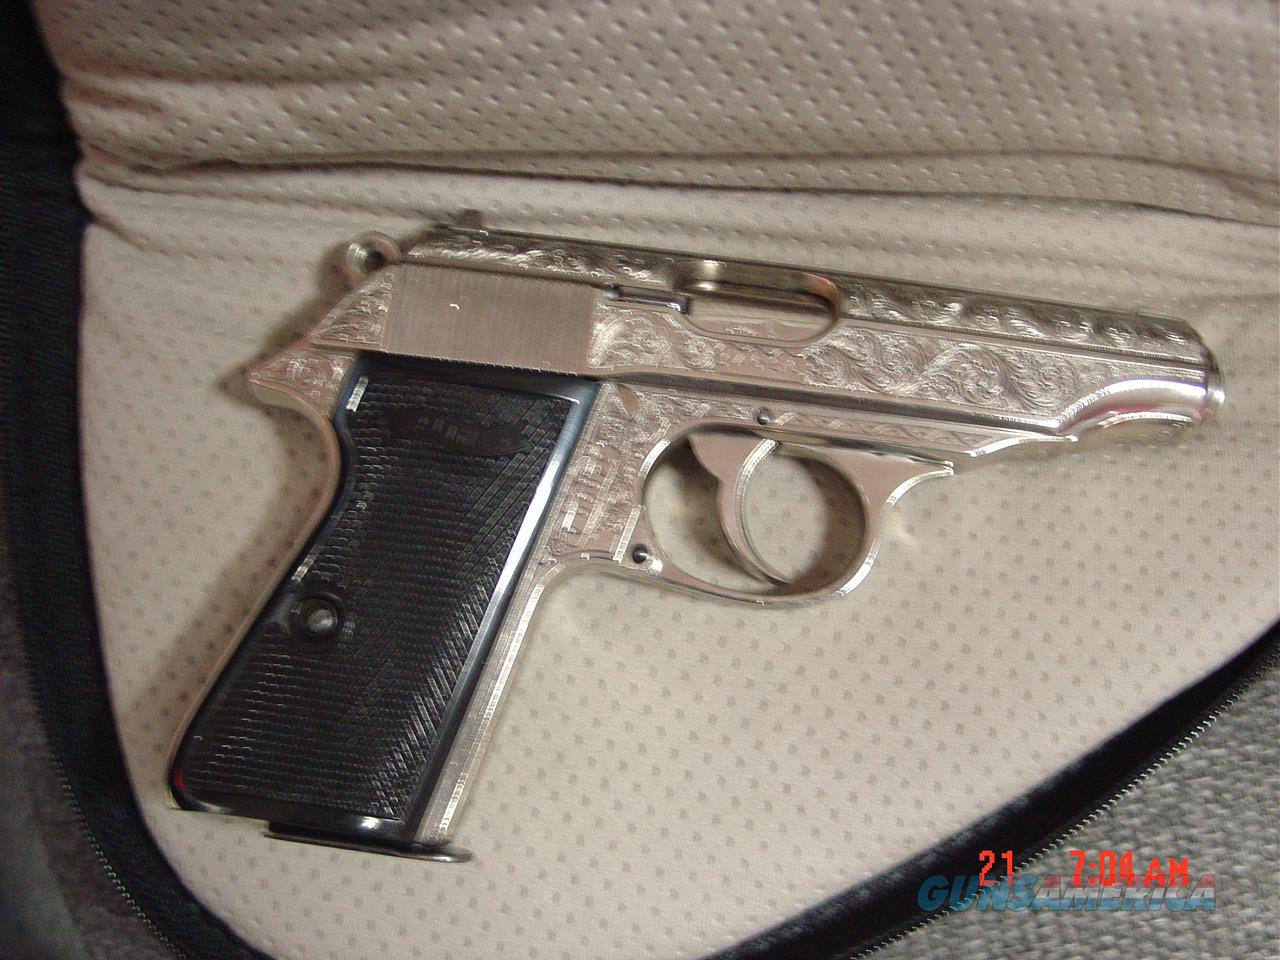 Walther PP 380 auto,nickel,fully deep scroll engraved,looks like new,black grips,soft zippered case,double action,circa 1960's  Guns > Pistols > Walther Pistols > Post WWII > PPK Series